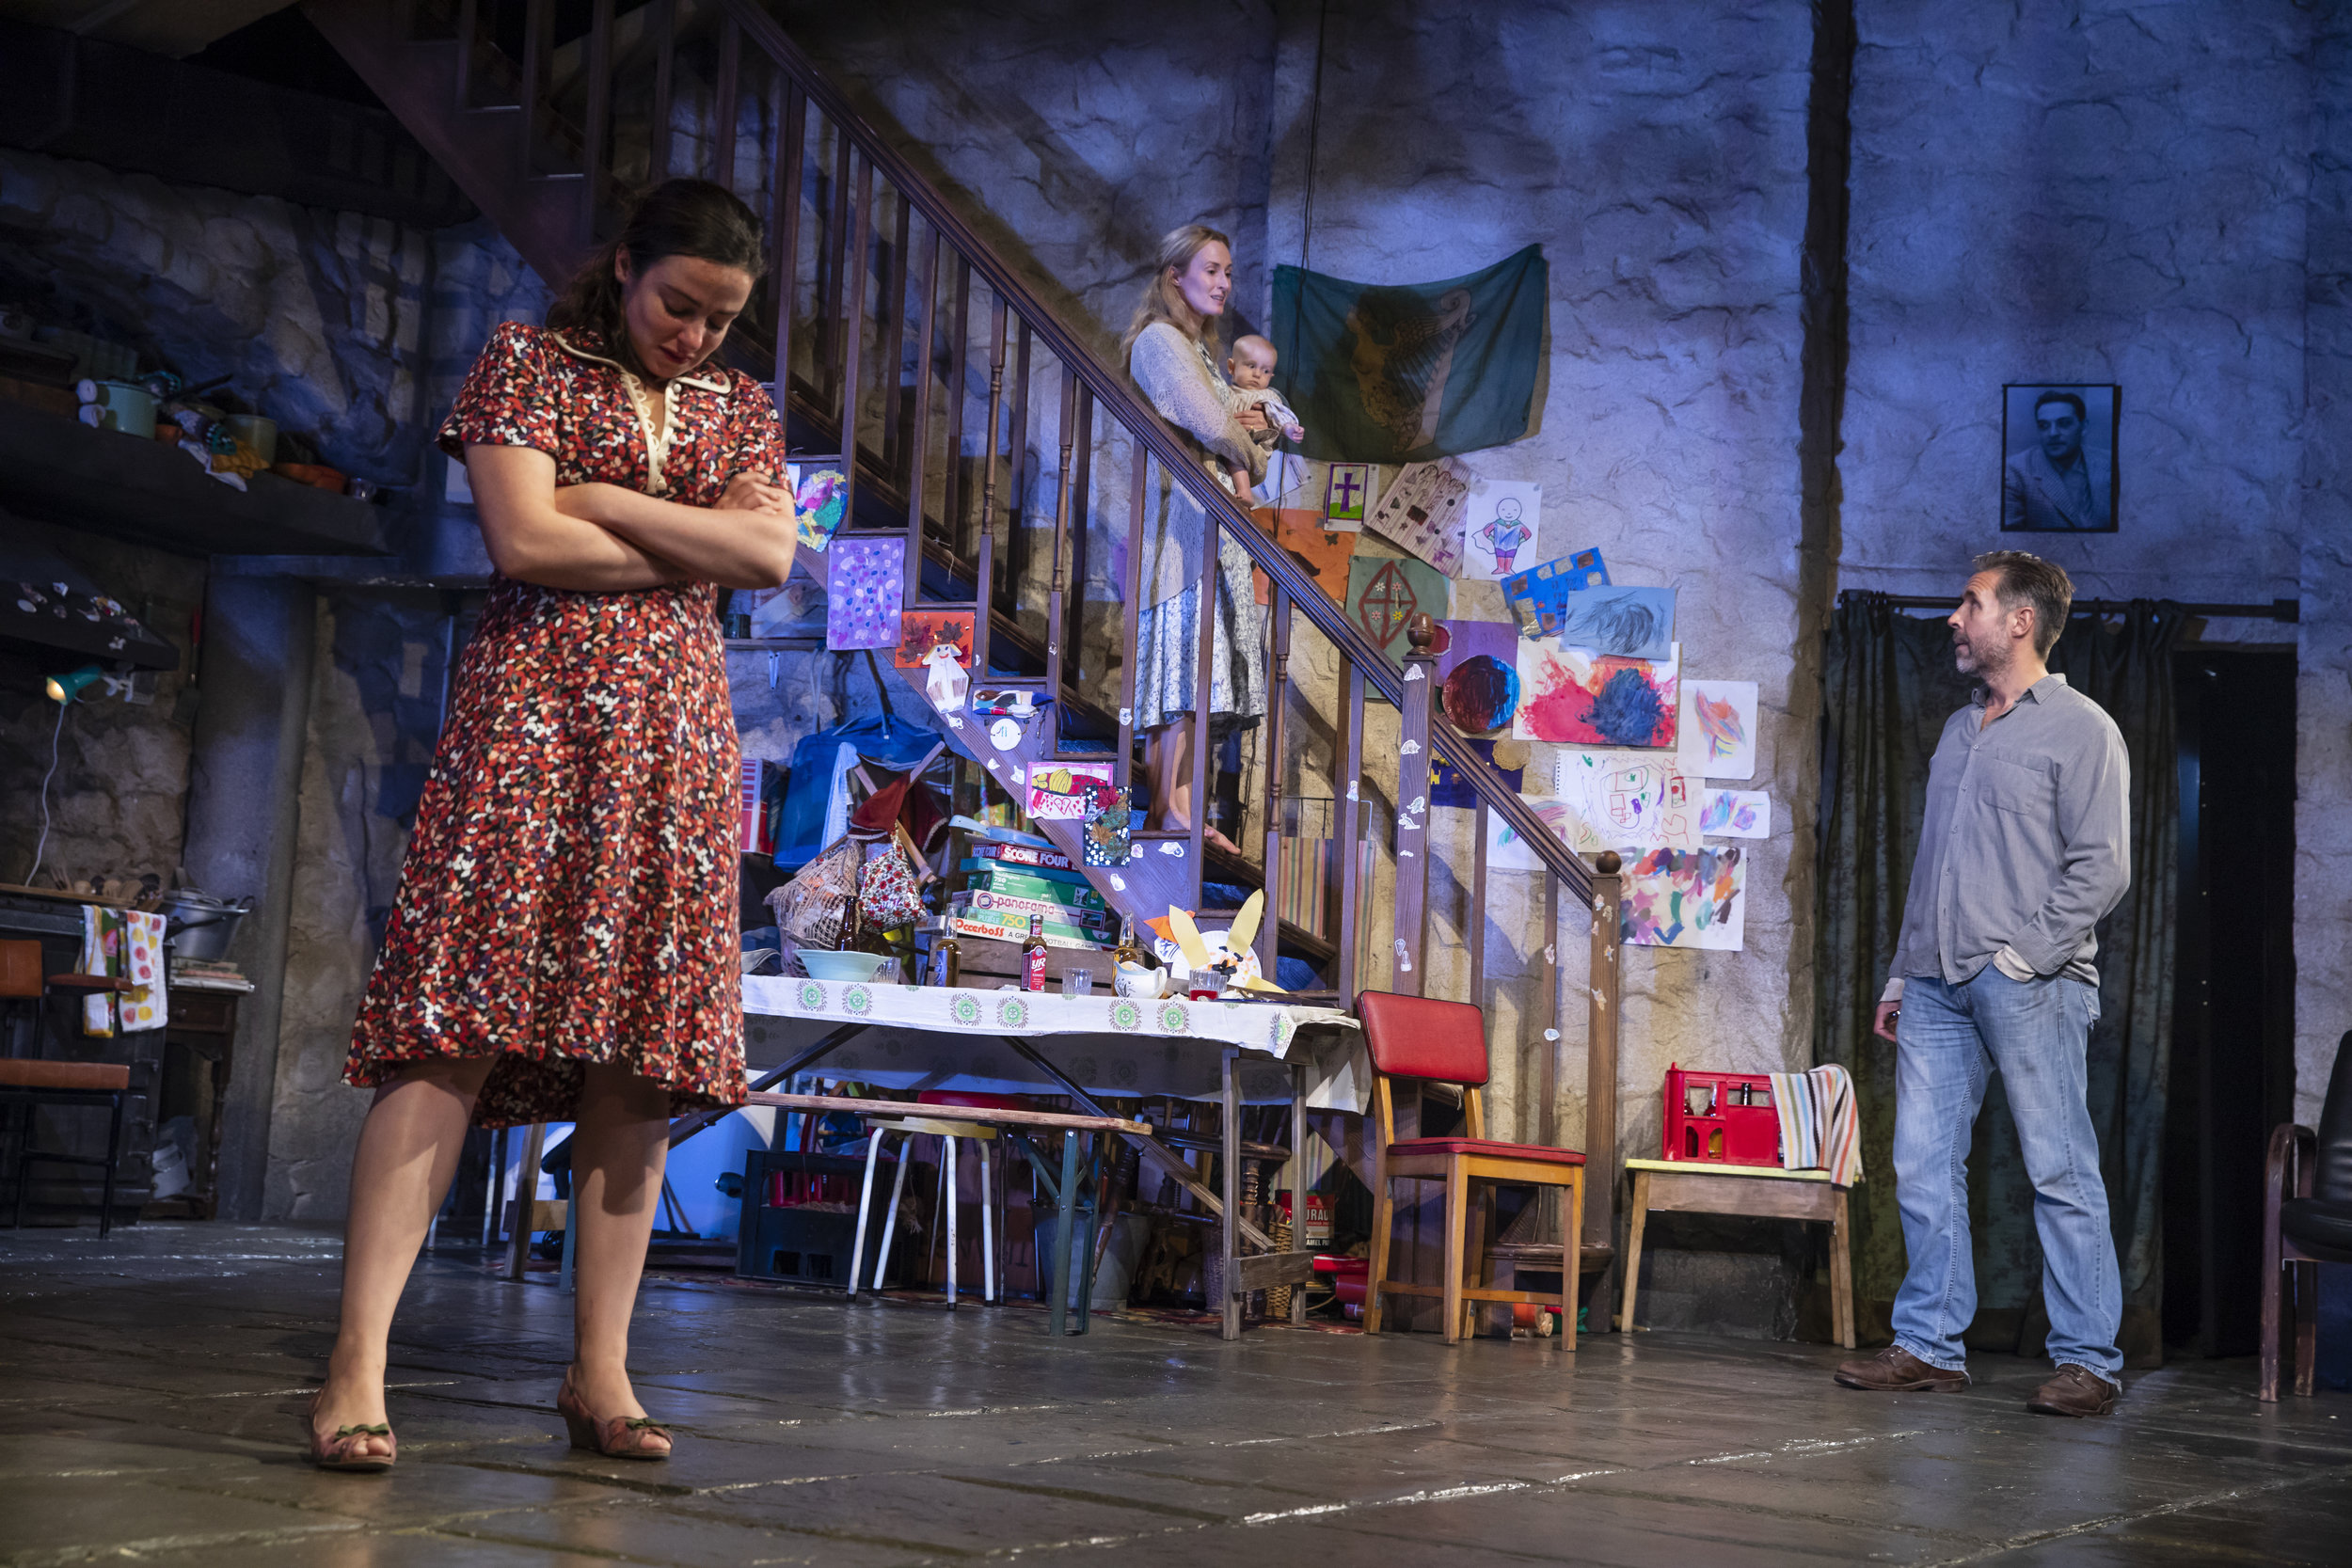 The Auld Triangle. Mary (Genevieve O'Reilly) and newest child, nine-month-old Bobby, implore Quinn (Paddy Considine) to call it a night while Caitlin (Laura Donnelly) waits. Photo by Joan Marcus.